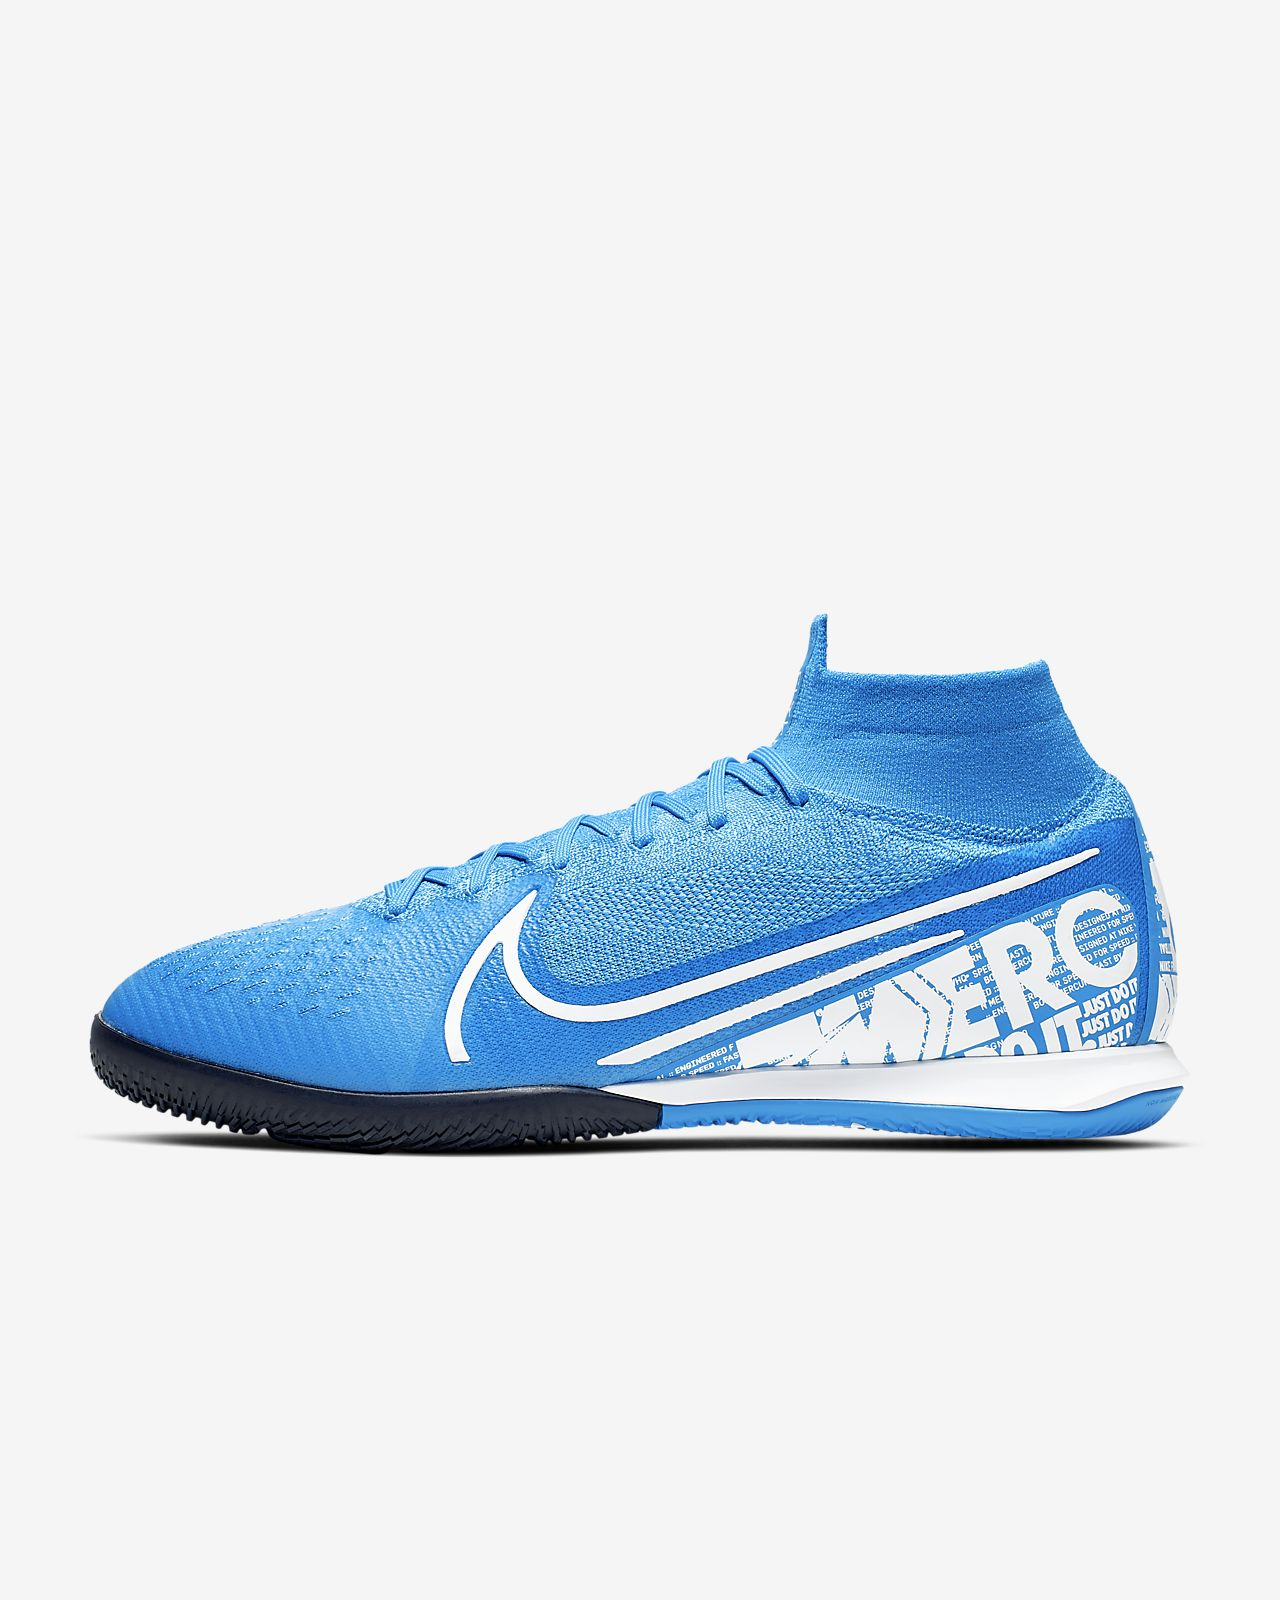 Chaussure de football en salle Nike Mercurial Superfly 7 Elite IC